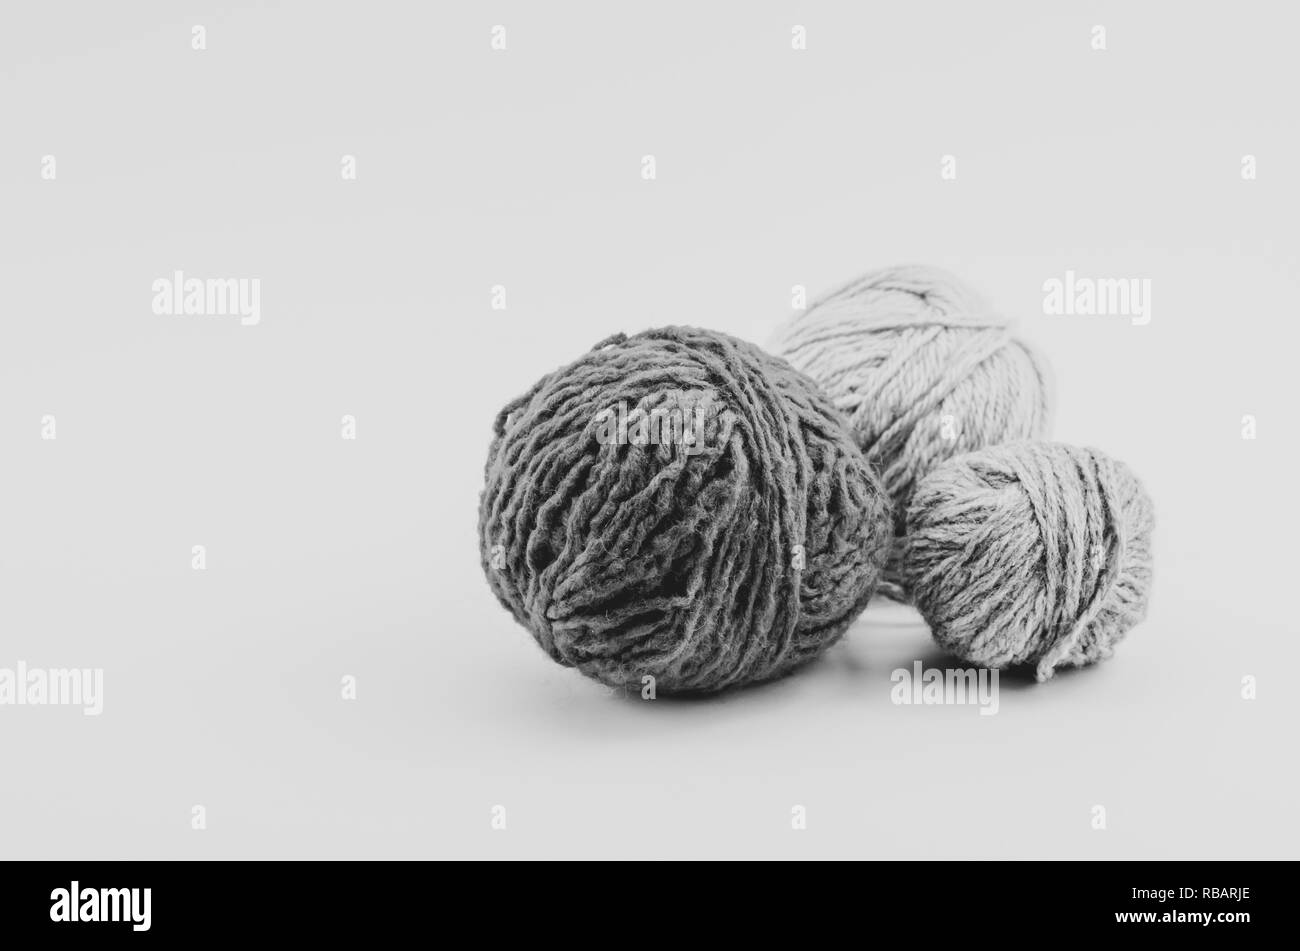 wool balls still life on a white surface - Stock Image